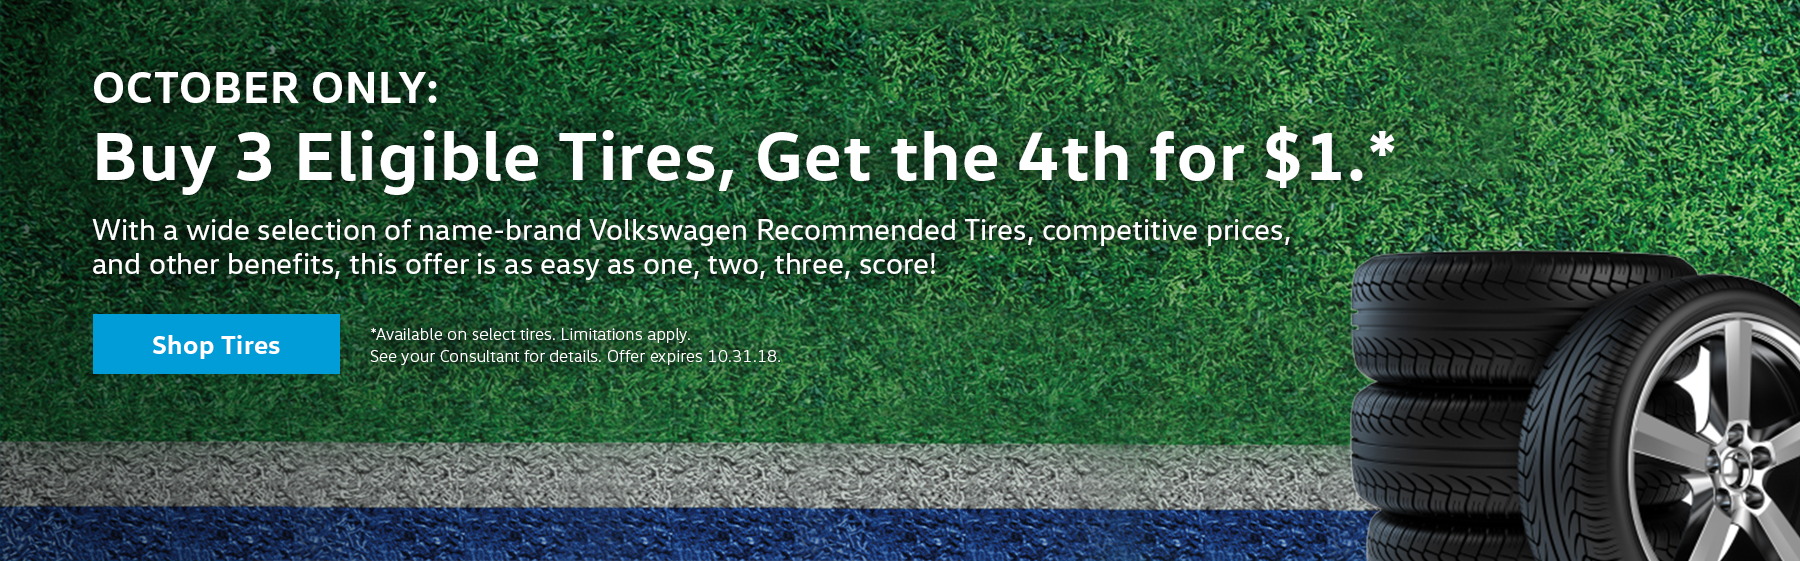 Buy 3 Eligible Tires, Get the 4th for $1 With a wide selection of name-brand Volkswagen Recommended Tires, competitive prices, and other benefits, this offer is as easy as one, two, three, score!